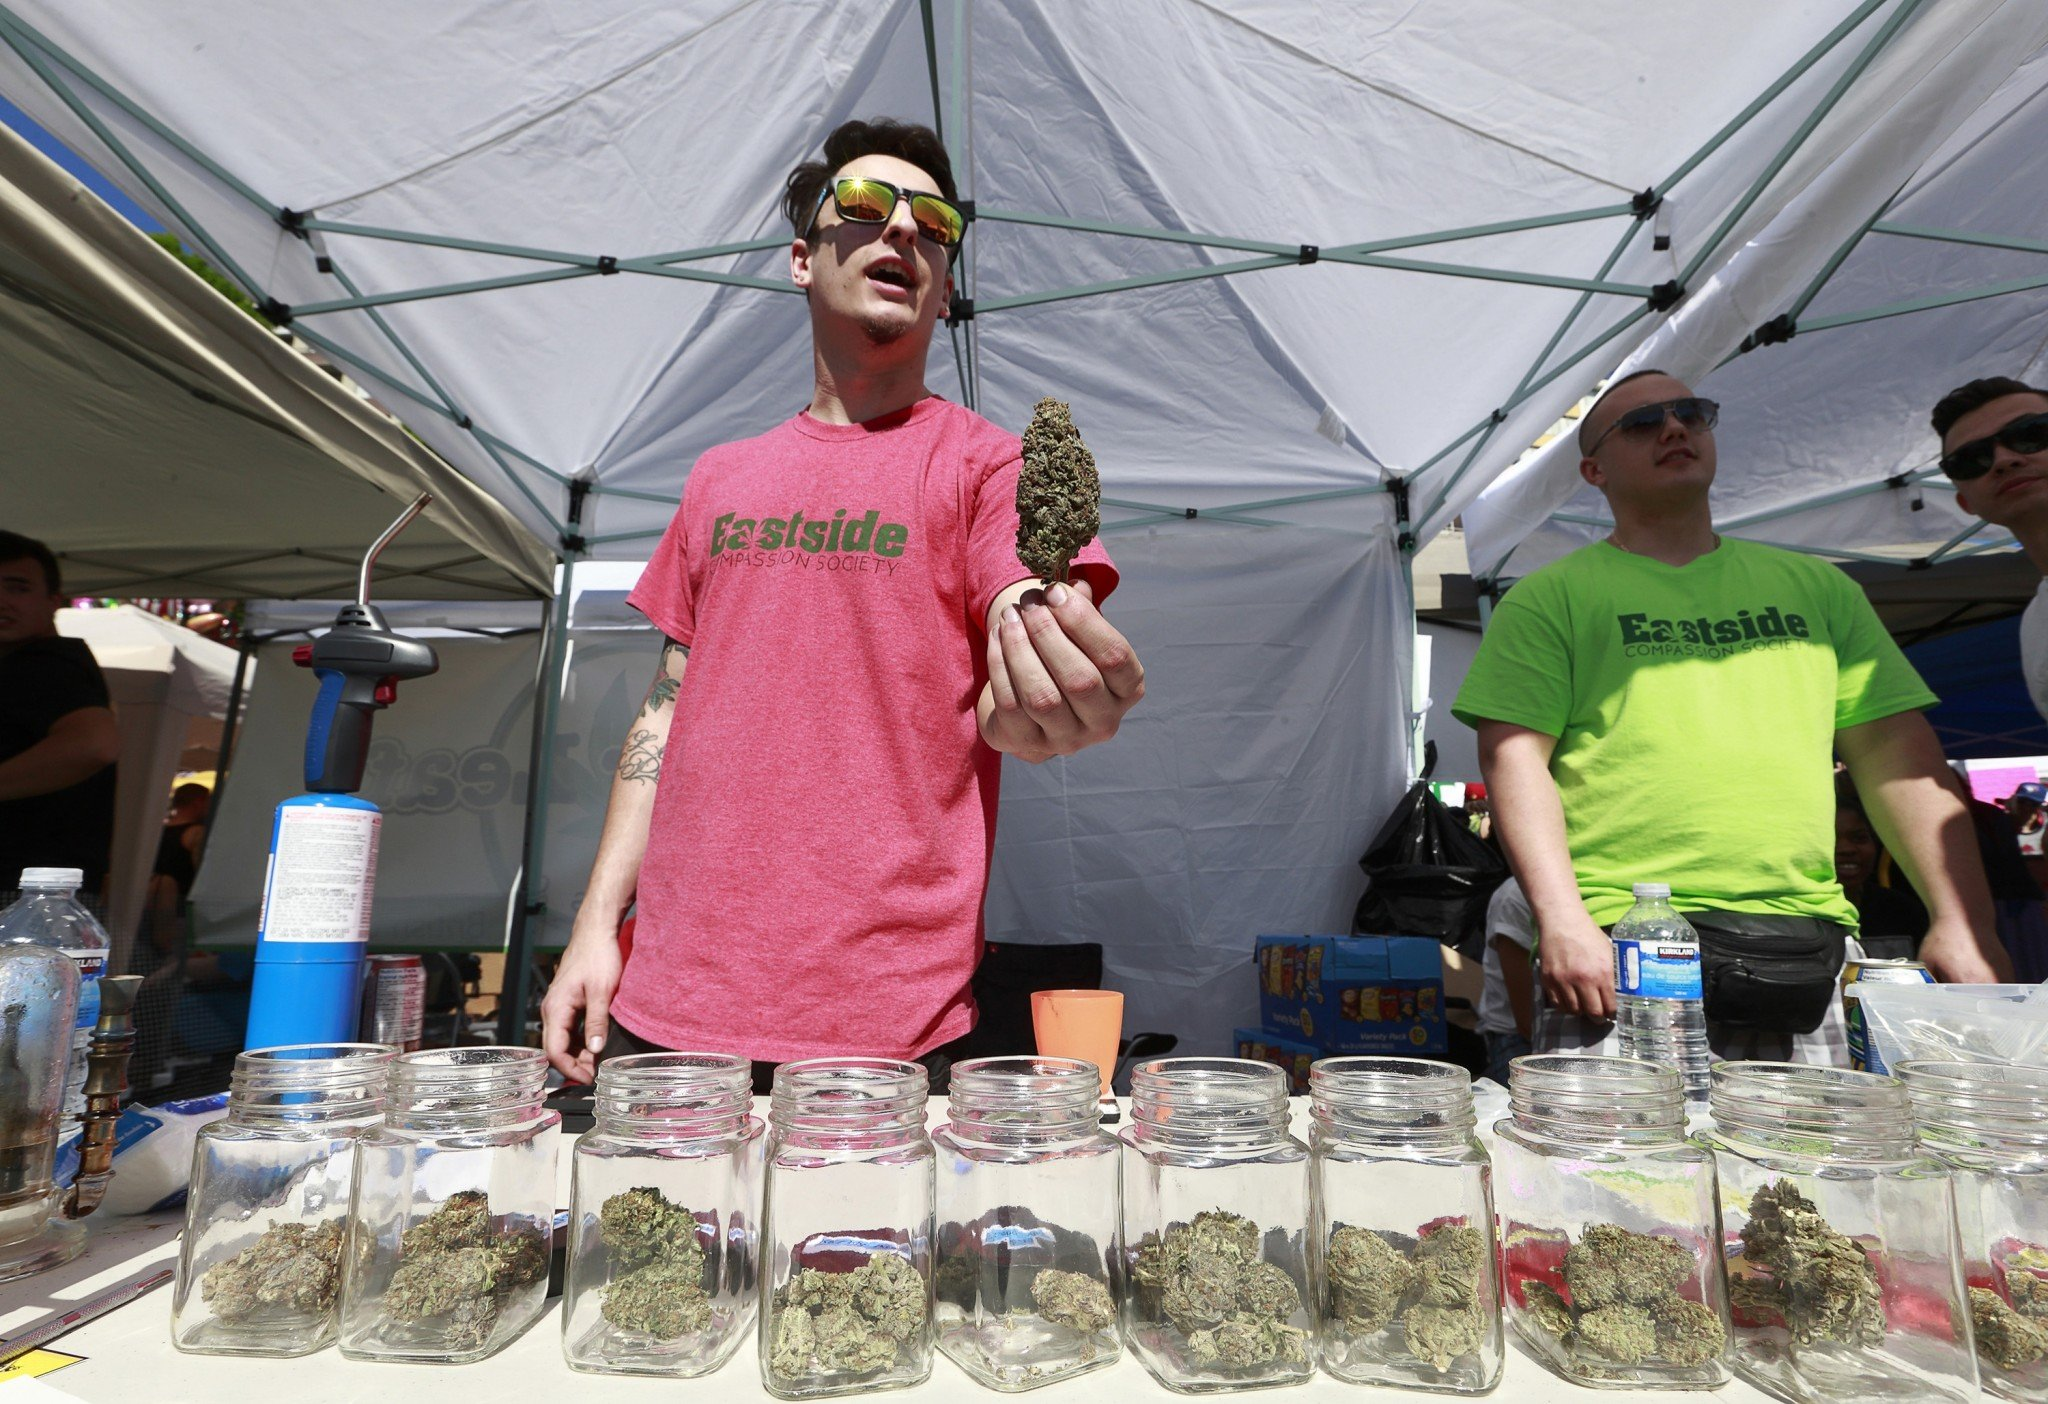 A vendor sells pot as thousands of people gather at 4/20 celebrations on April 20, 2016 at Sunset Beach in Vancouver, Canada. (Getty)